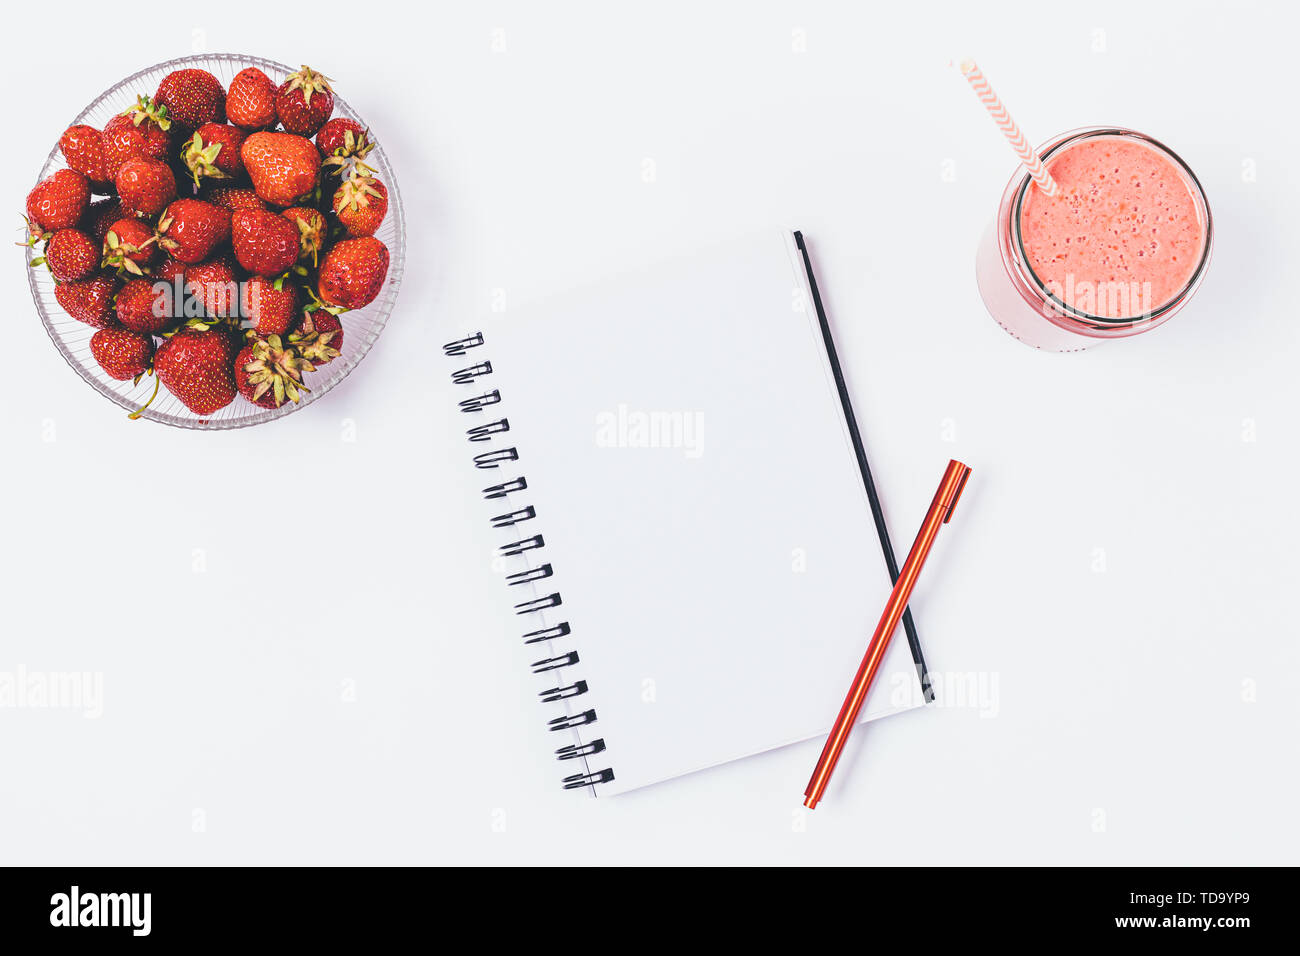 Flat lay arrangement of empty notebook journal with pen next to bowl of fresh strawberries and smoothie on white background, top view. - Stock Image